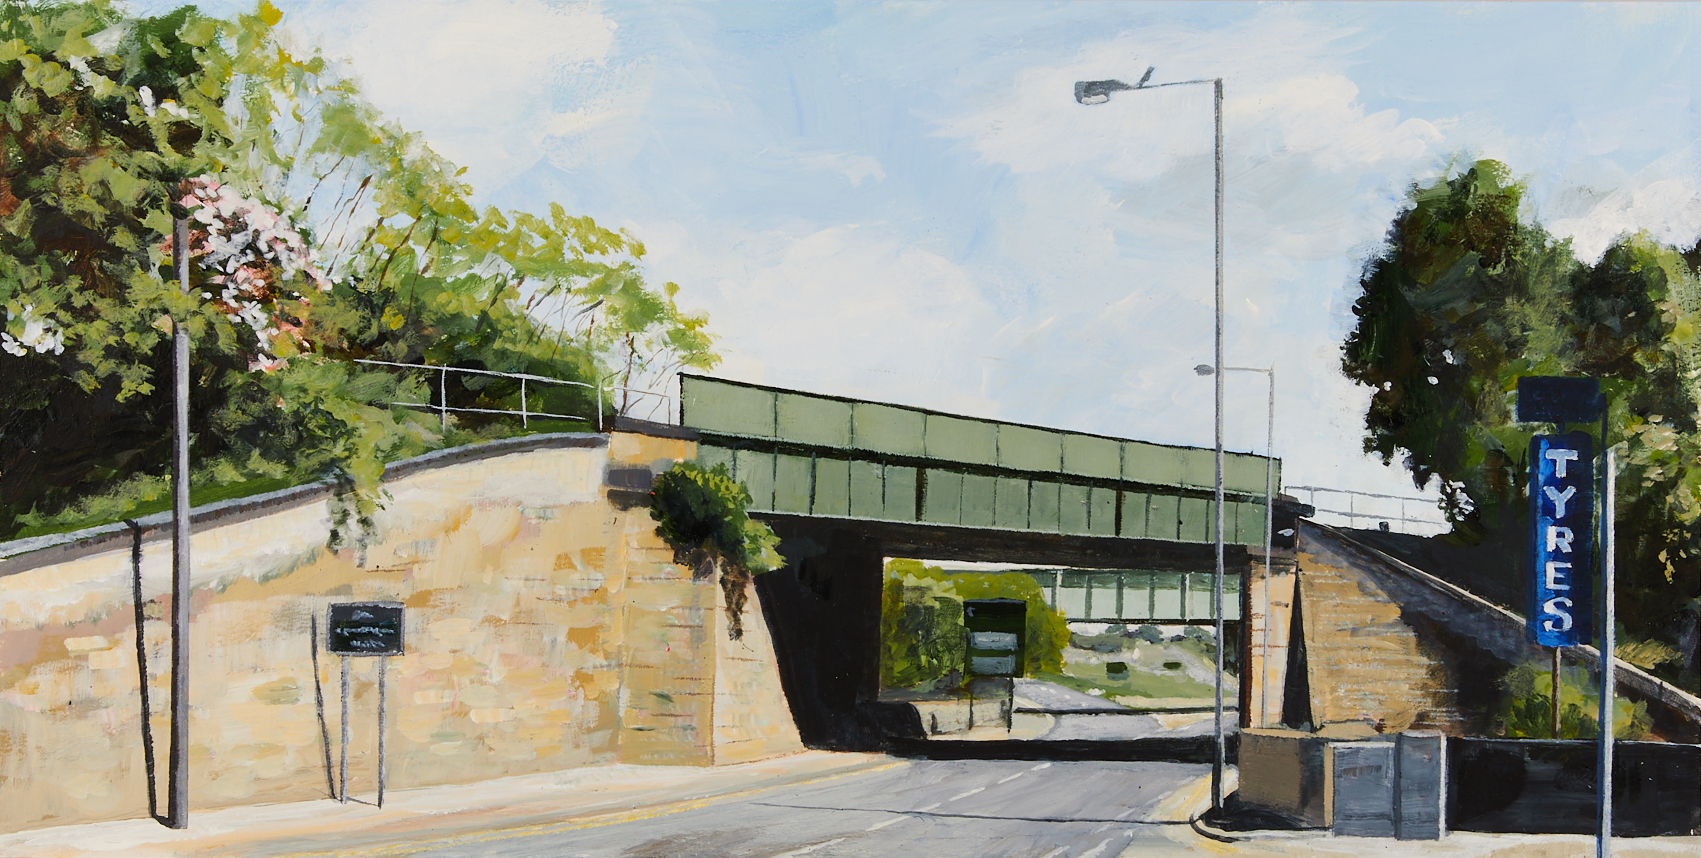 31 Saturady 9th May - Railway Bridges over Doncaster Road